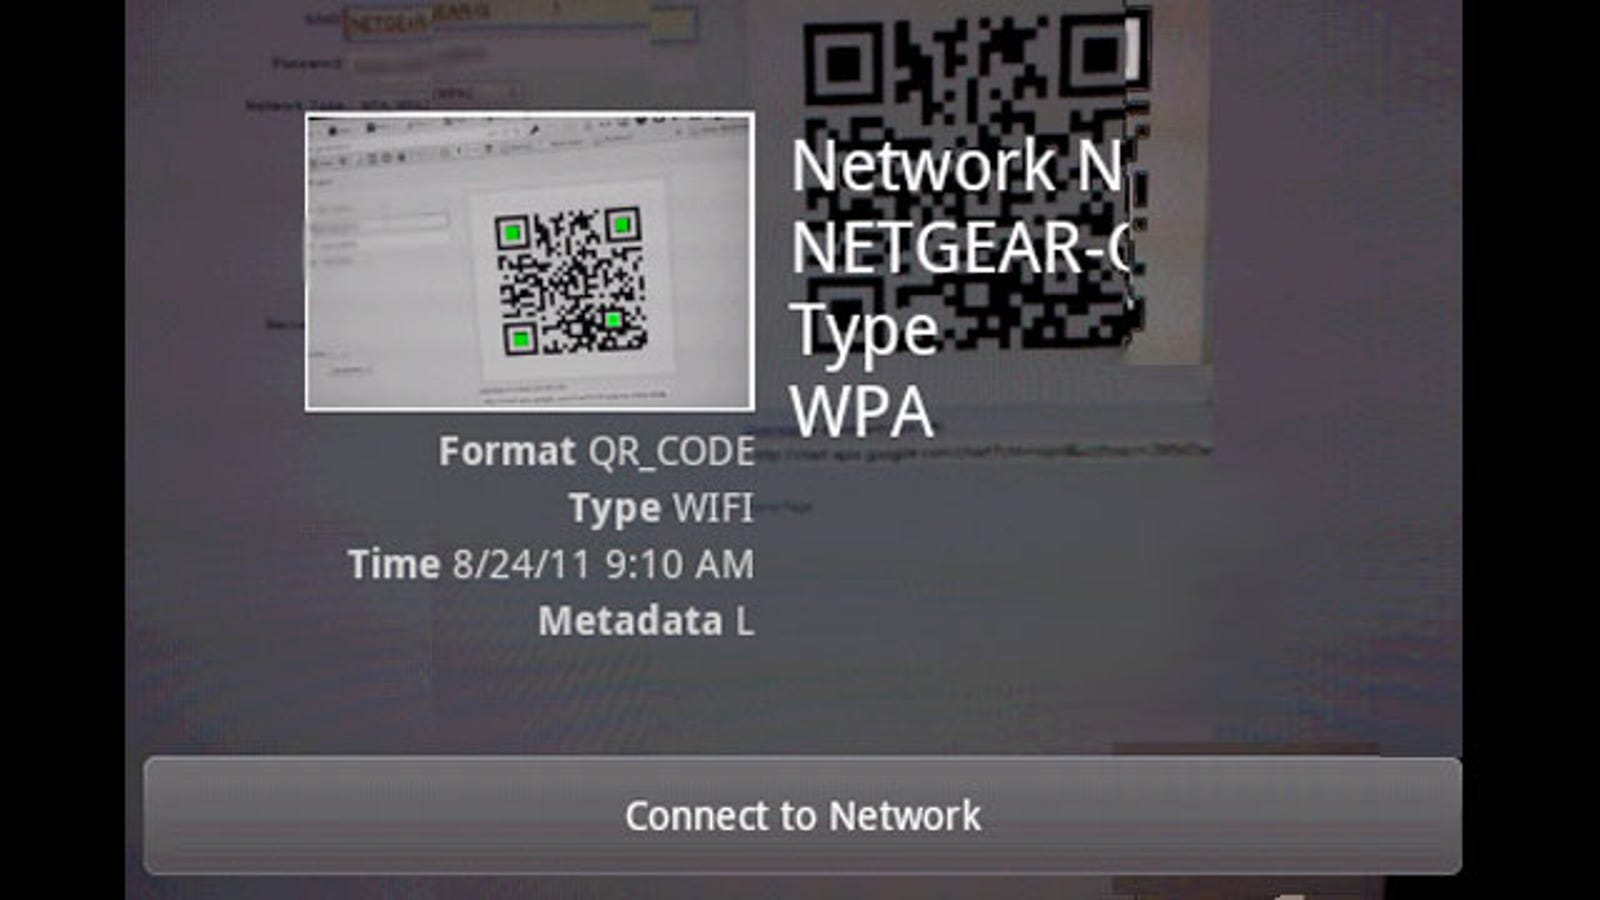 How to Share Your Wi-Fi Network with Friends, No Password